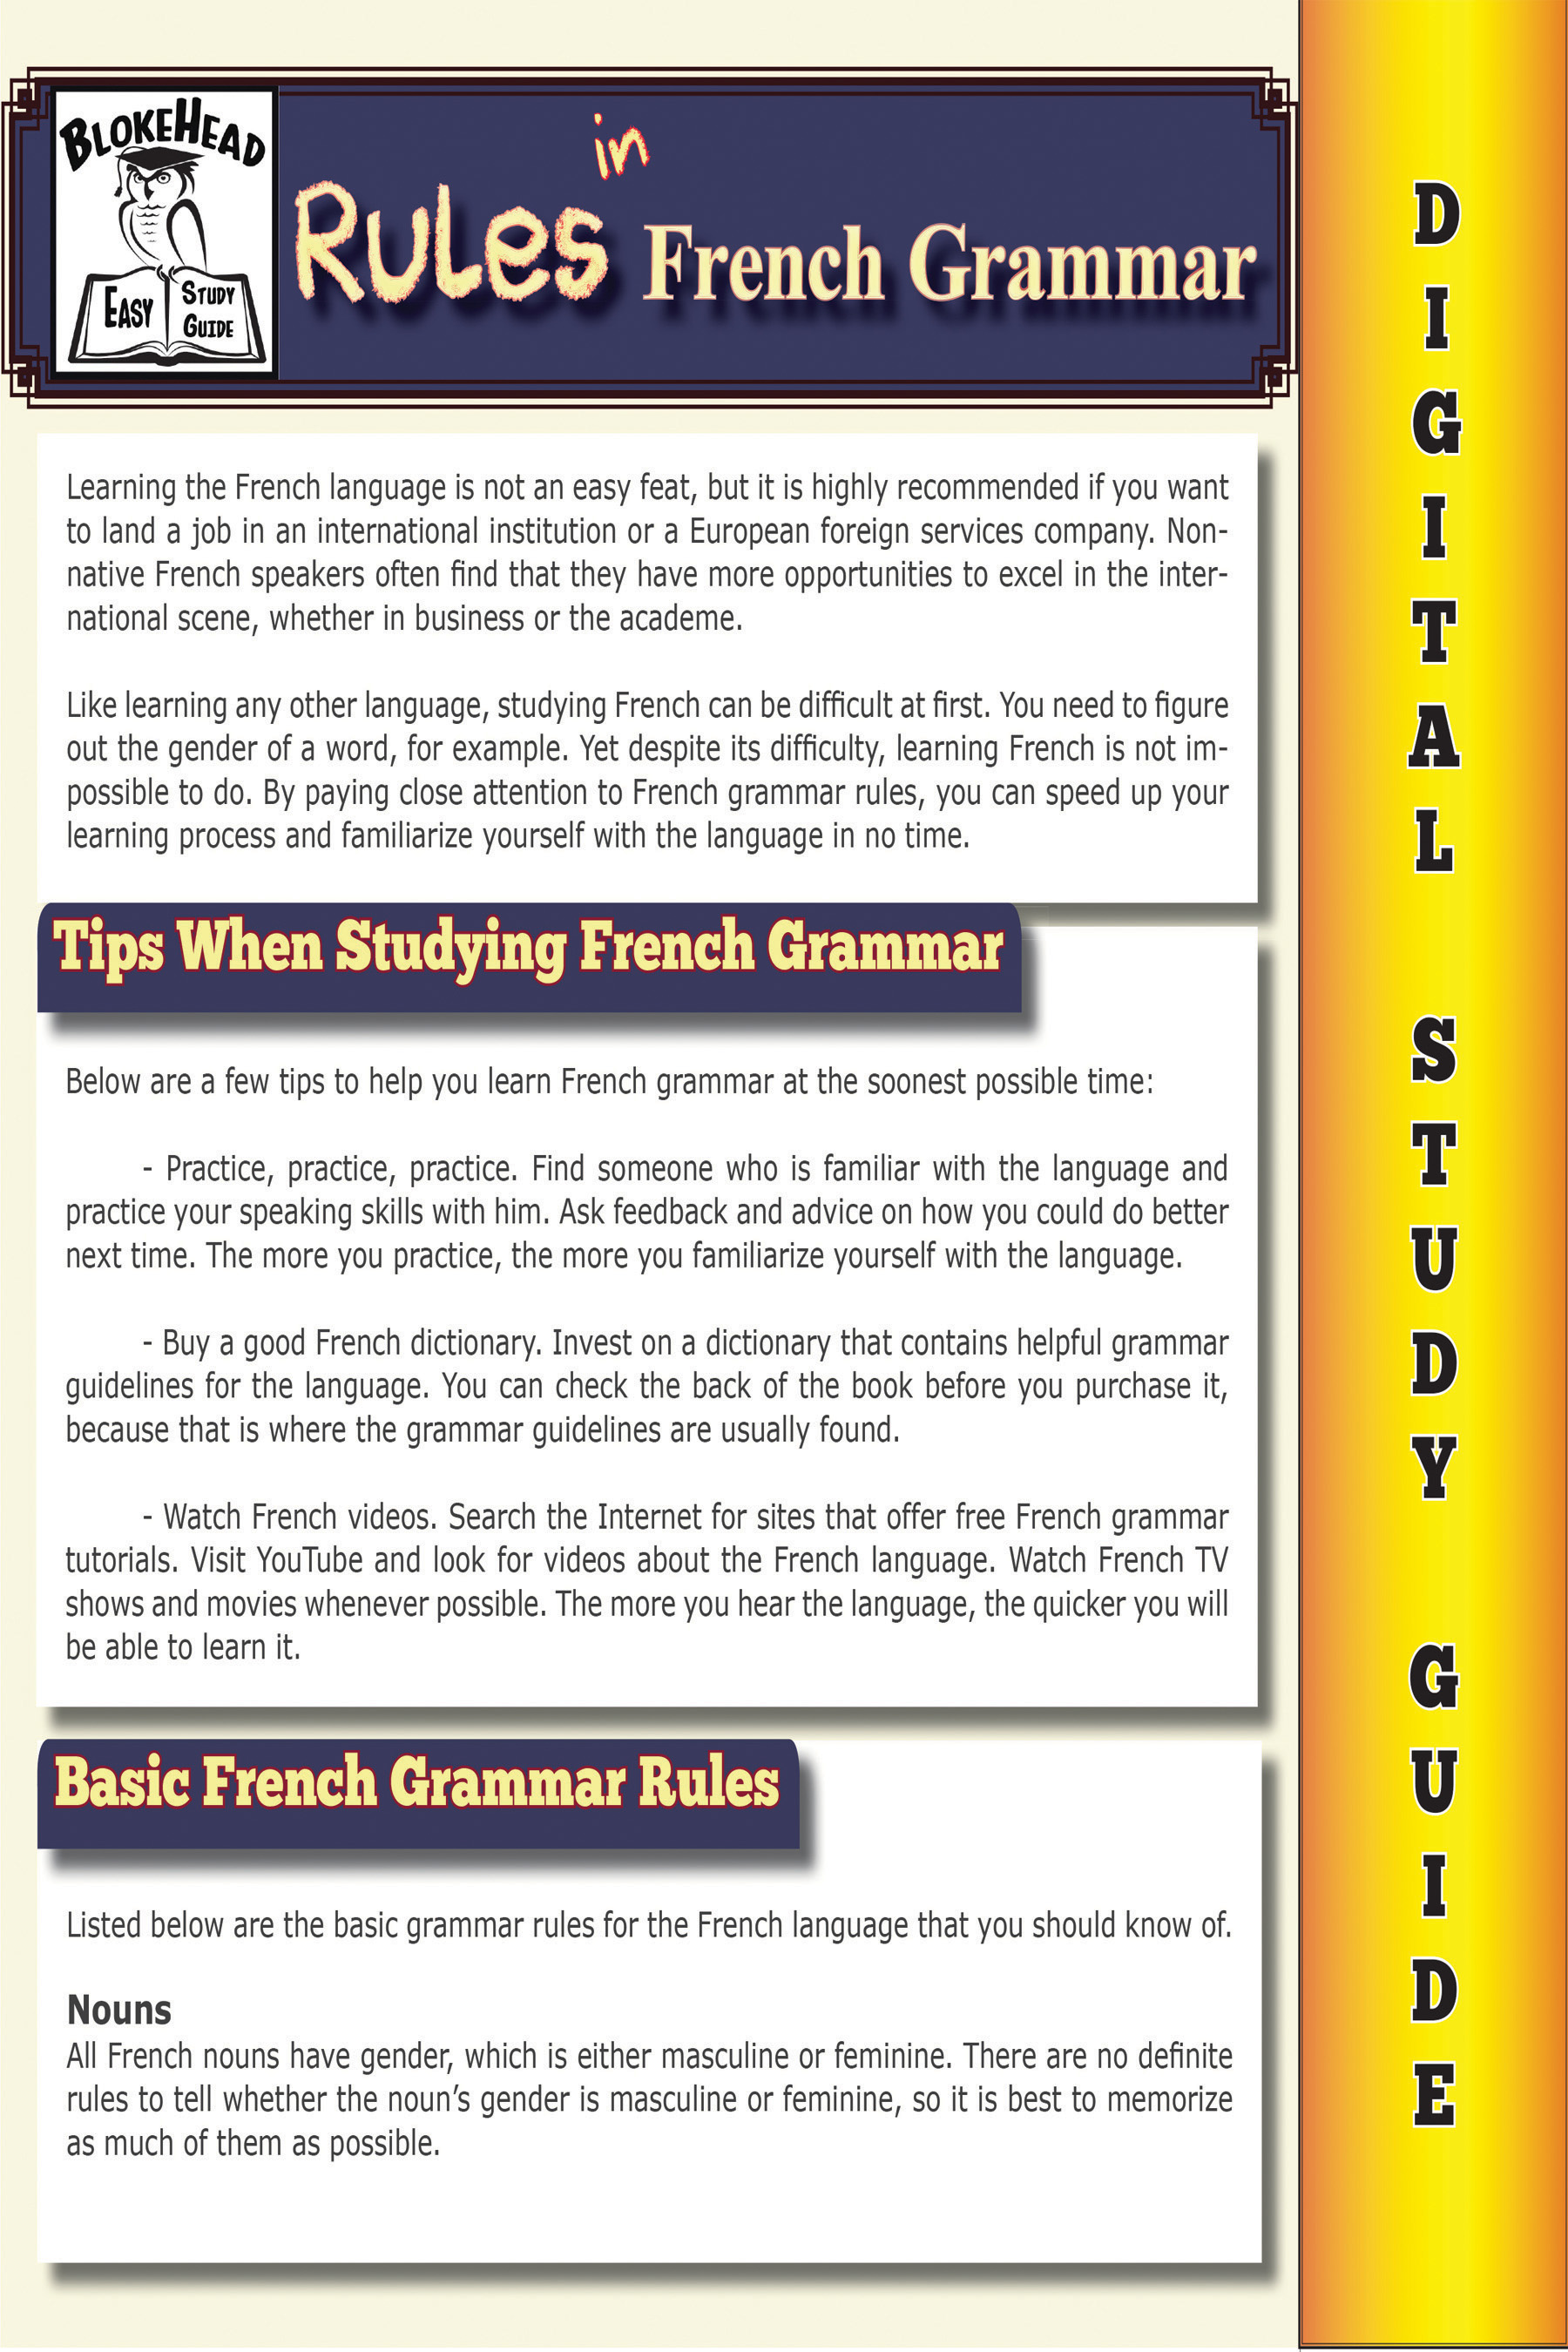 Rules In French Grammar ( Blokehead Easy Study Guide), an Ebook by The  Blokehead